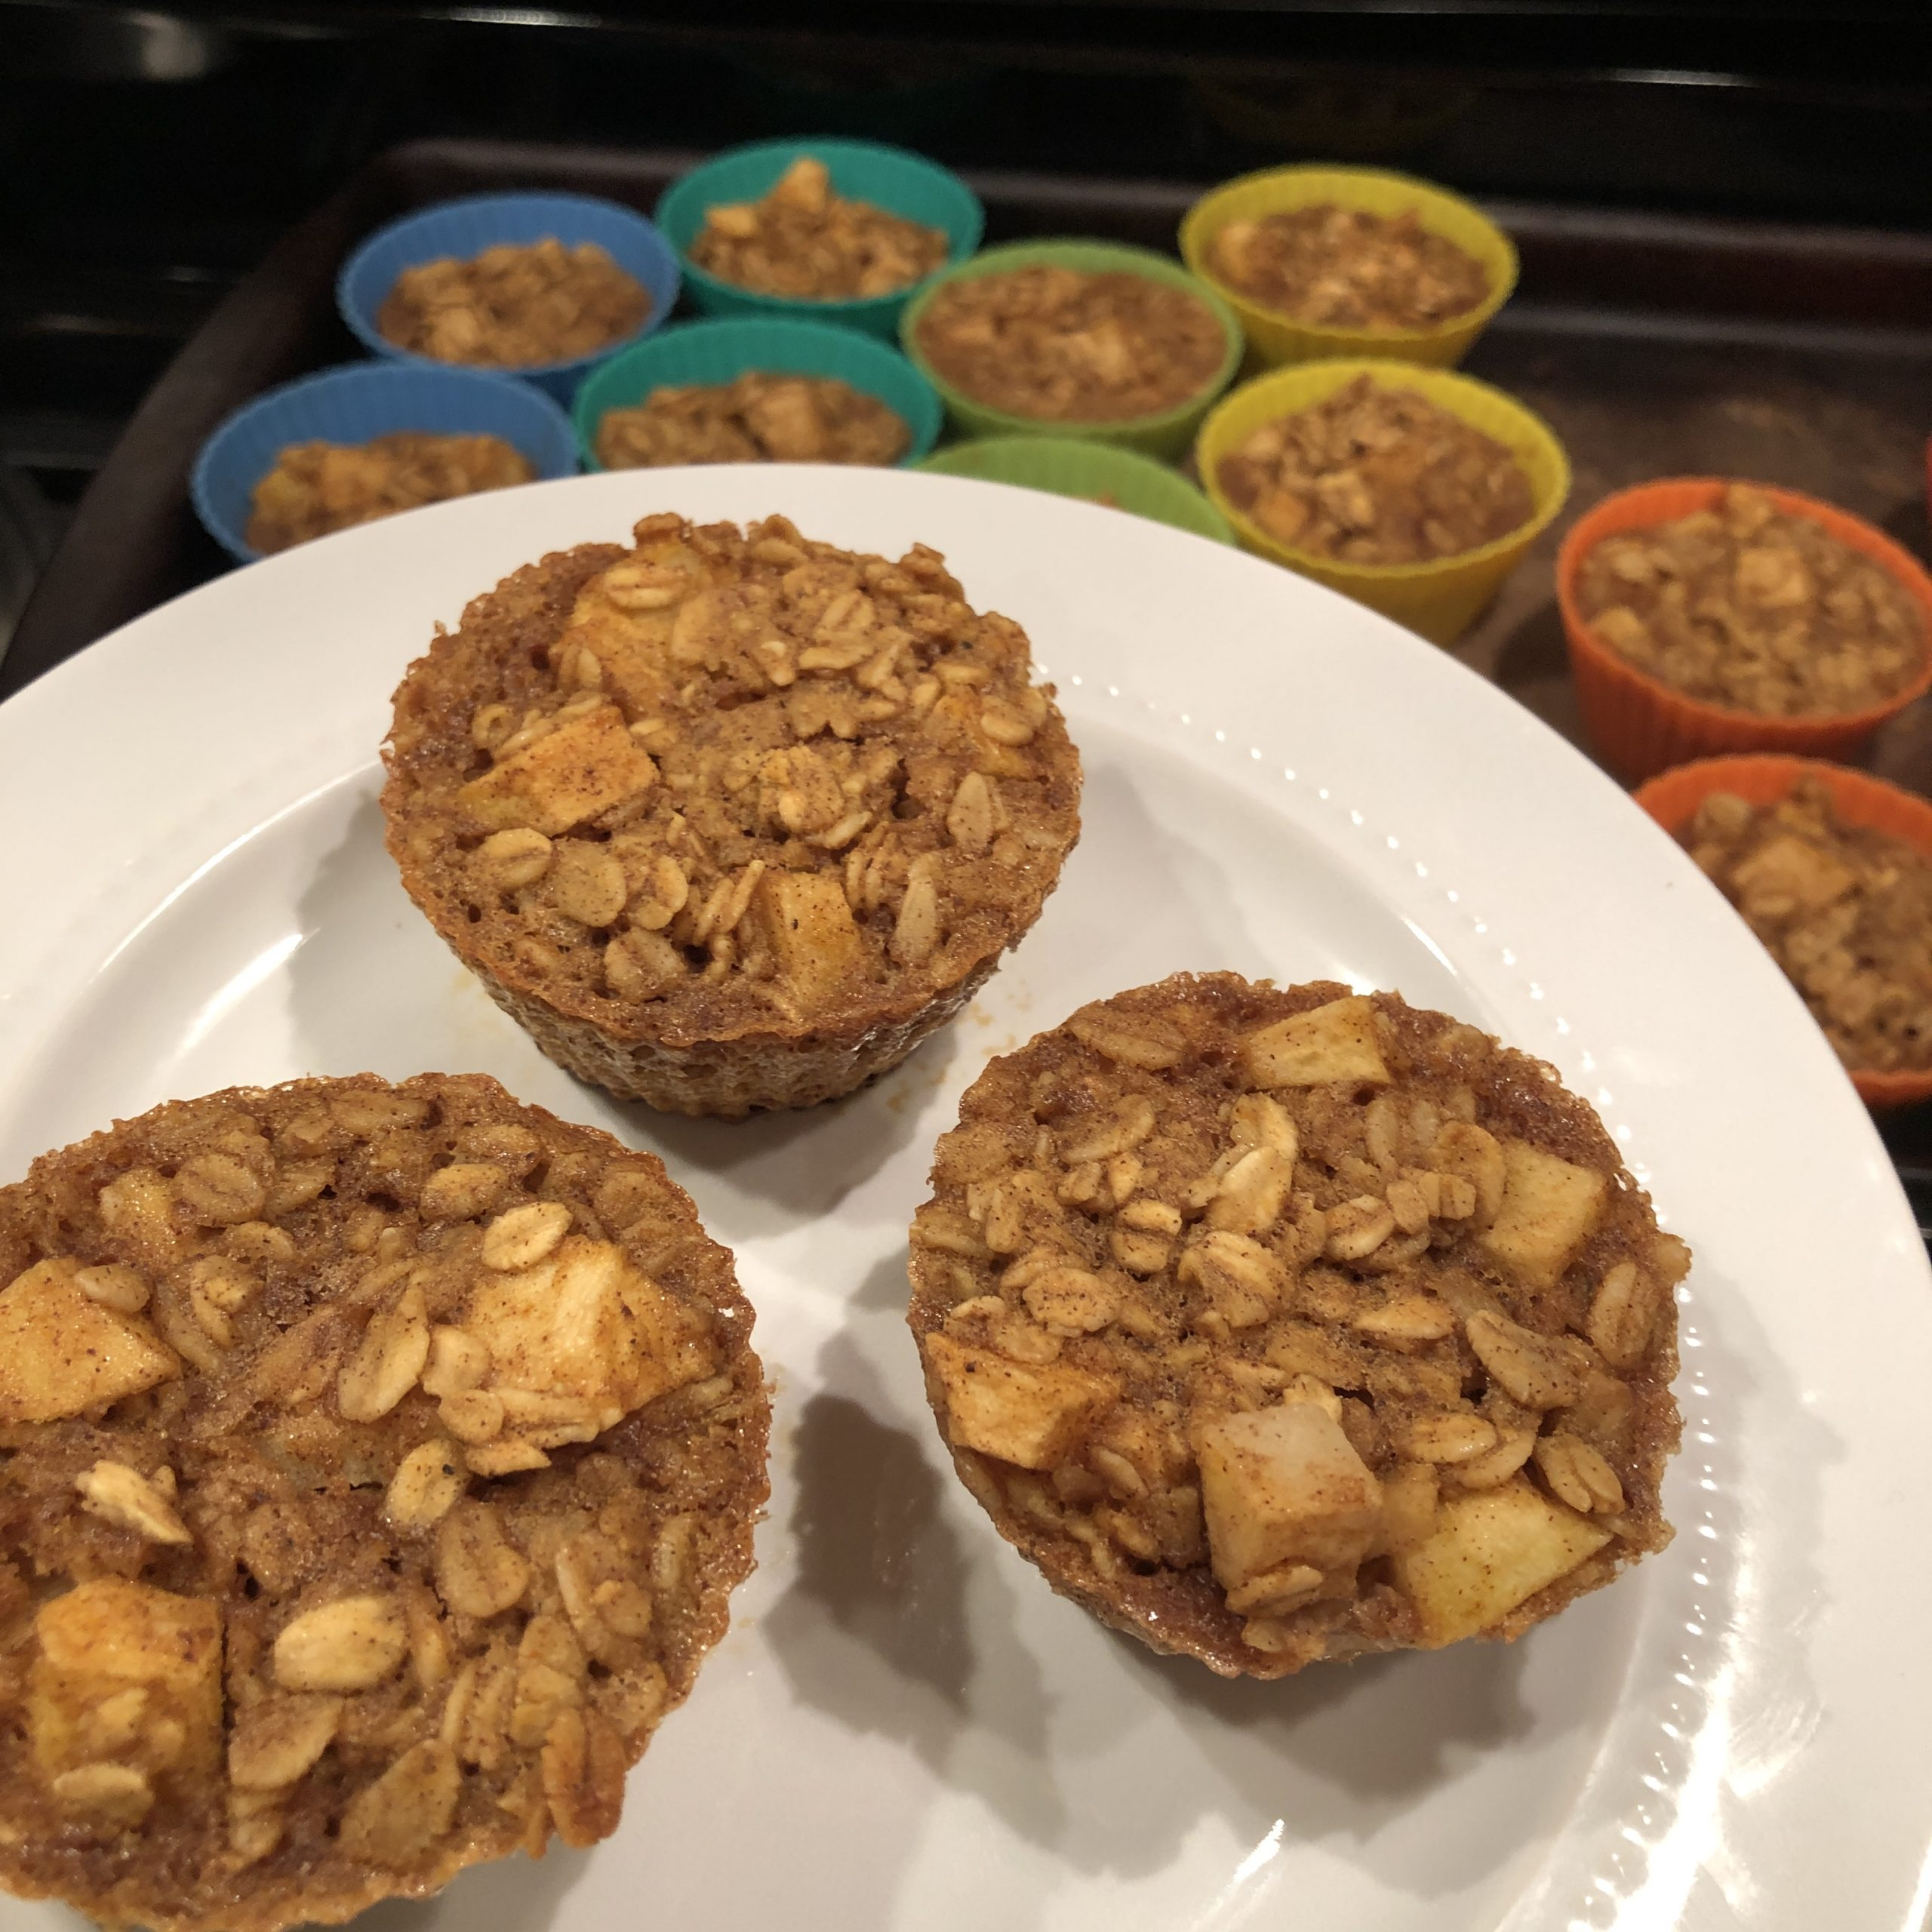 A plate with 3 Pumpkin Apple Baked Oatmeal Muffins